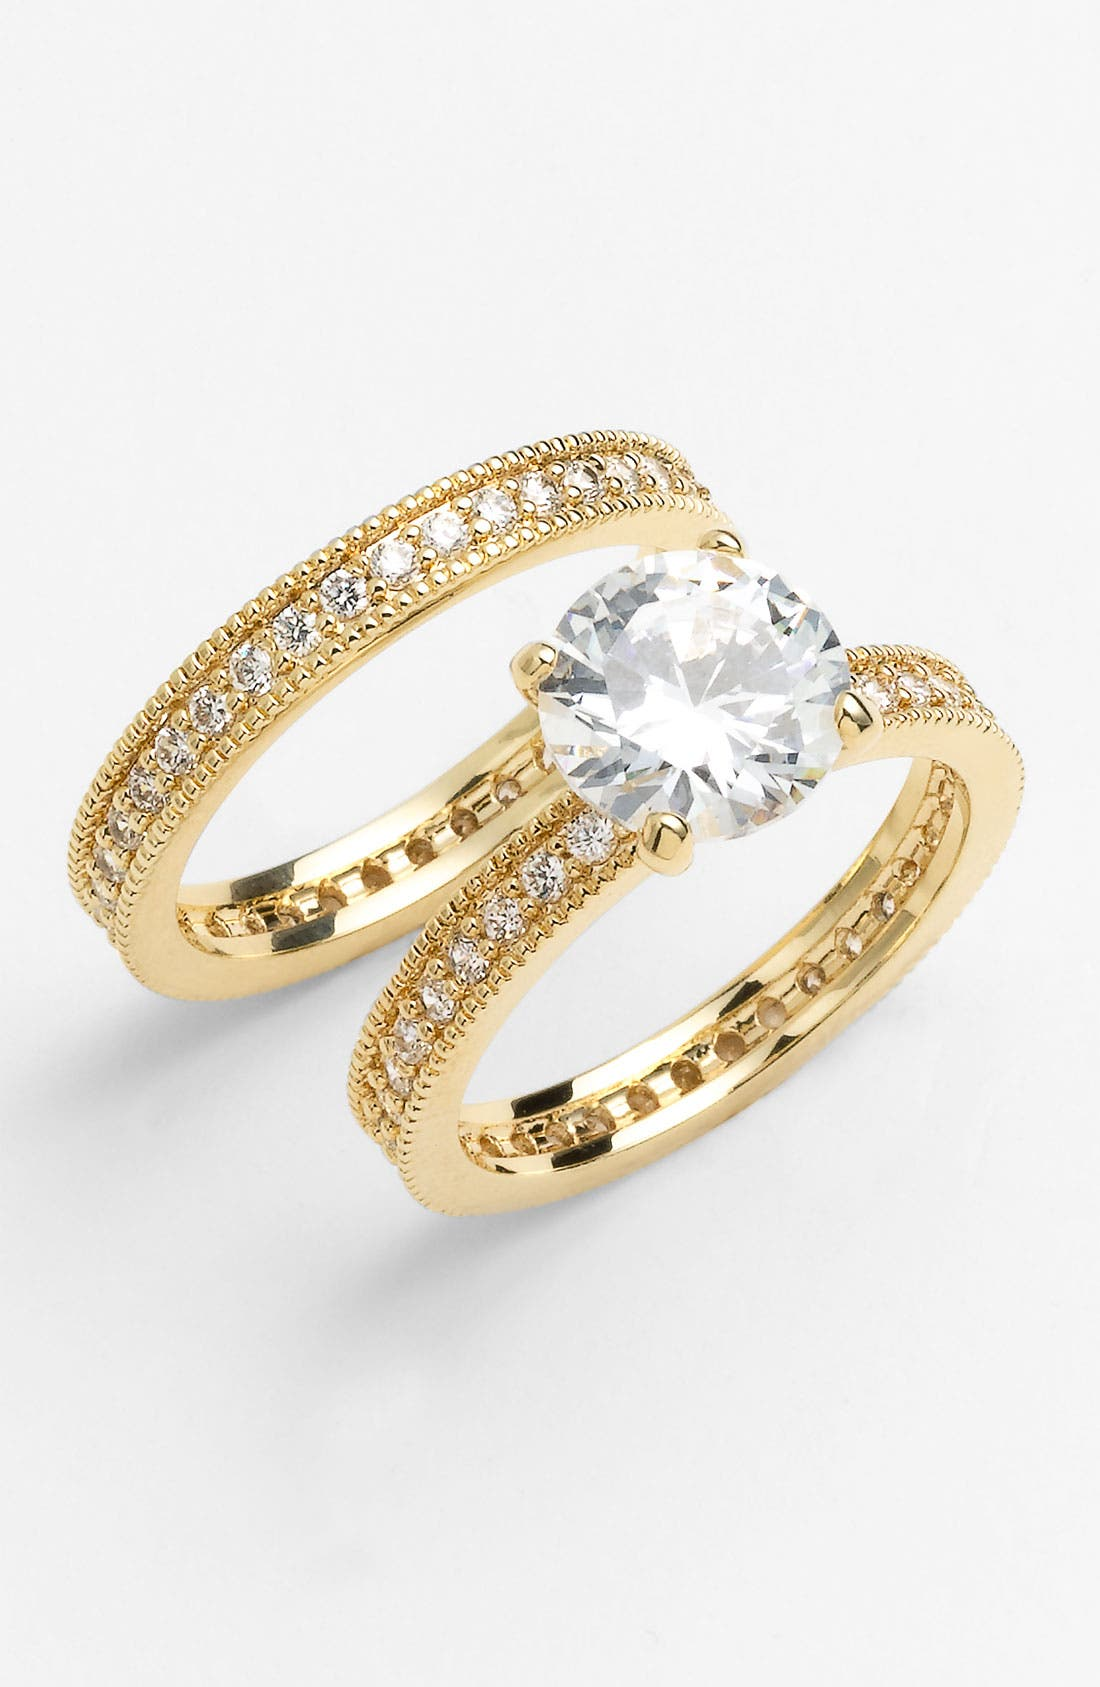 Main Image - Ariella Collection Stackable Rings (Set of 2)